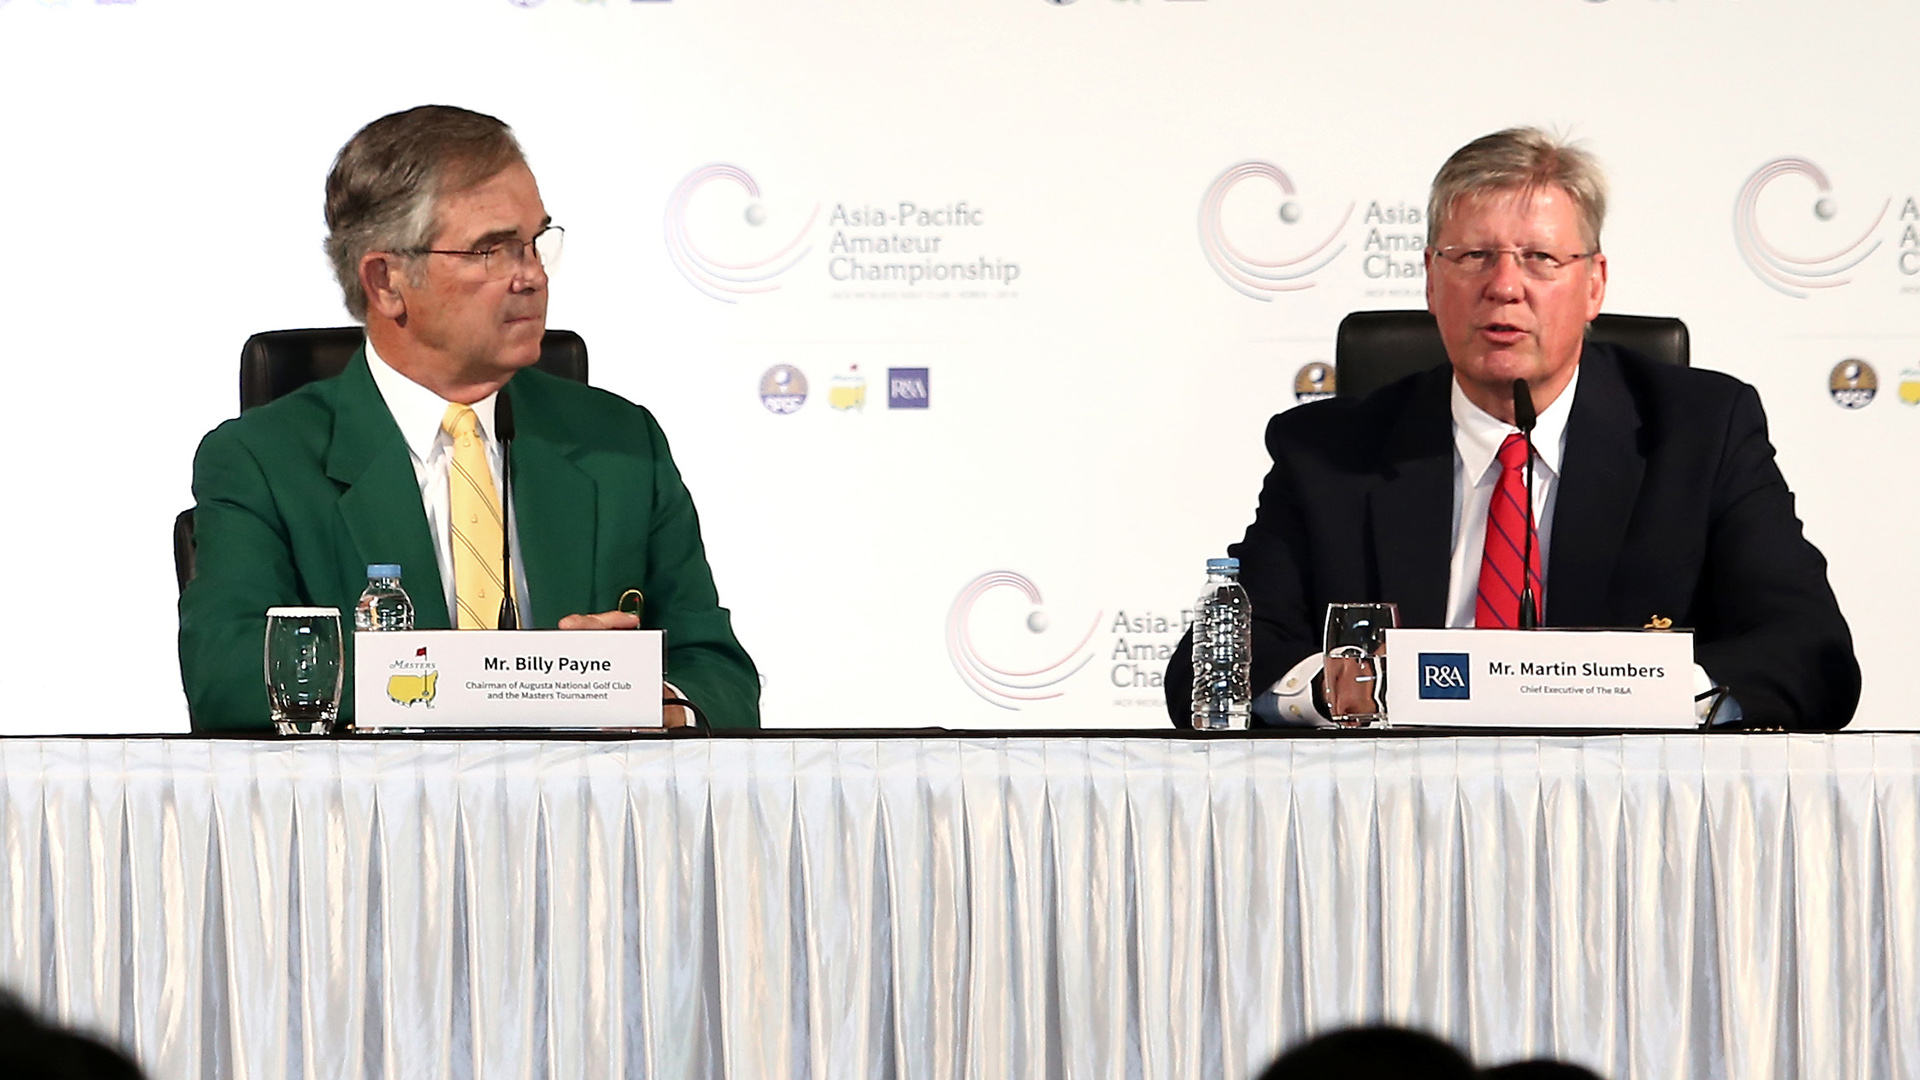 Incheon, South Korea: Dr. David Cherry(Left), Mr. Billy Payne(Middle), Mr Martin Slumbers(Right) on Official Press Conference of 2016 AAC at the Jack Nicklaus Golf Club in Korea on October 6th, 2016. (Photo by AAC)